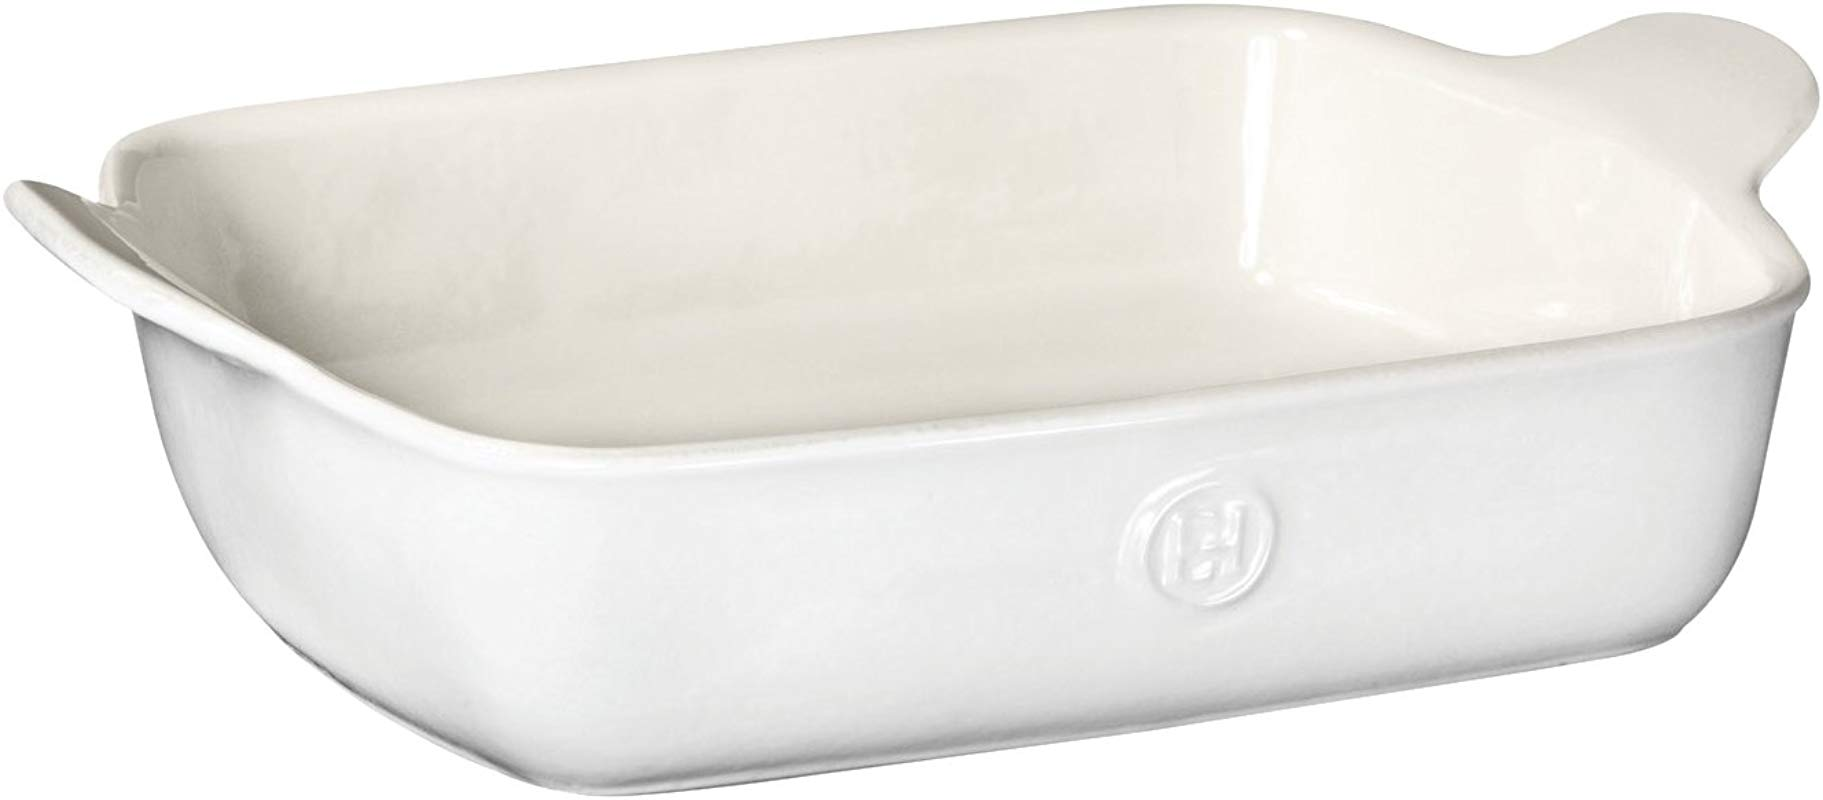 Emile Henry 239628 HR Ceramic Small Rectangular Baker Sugar